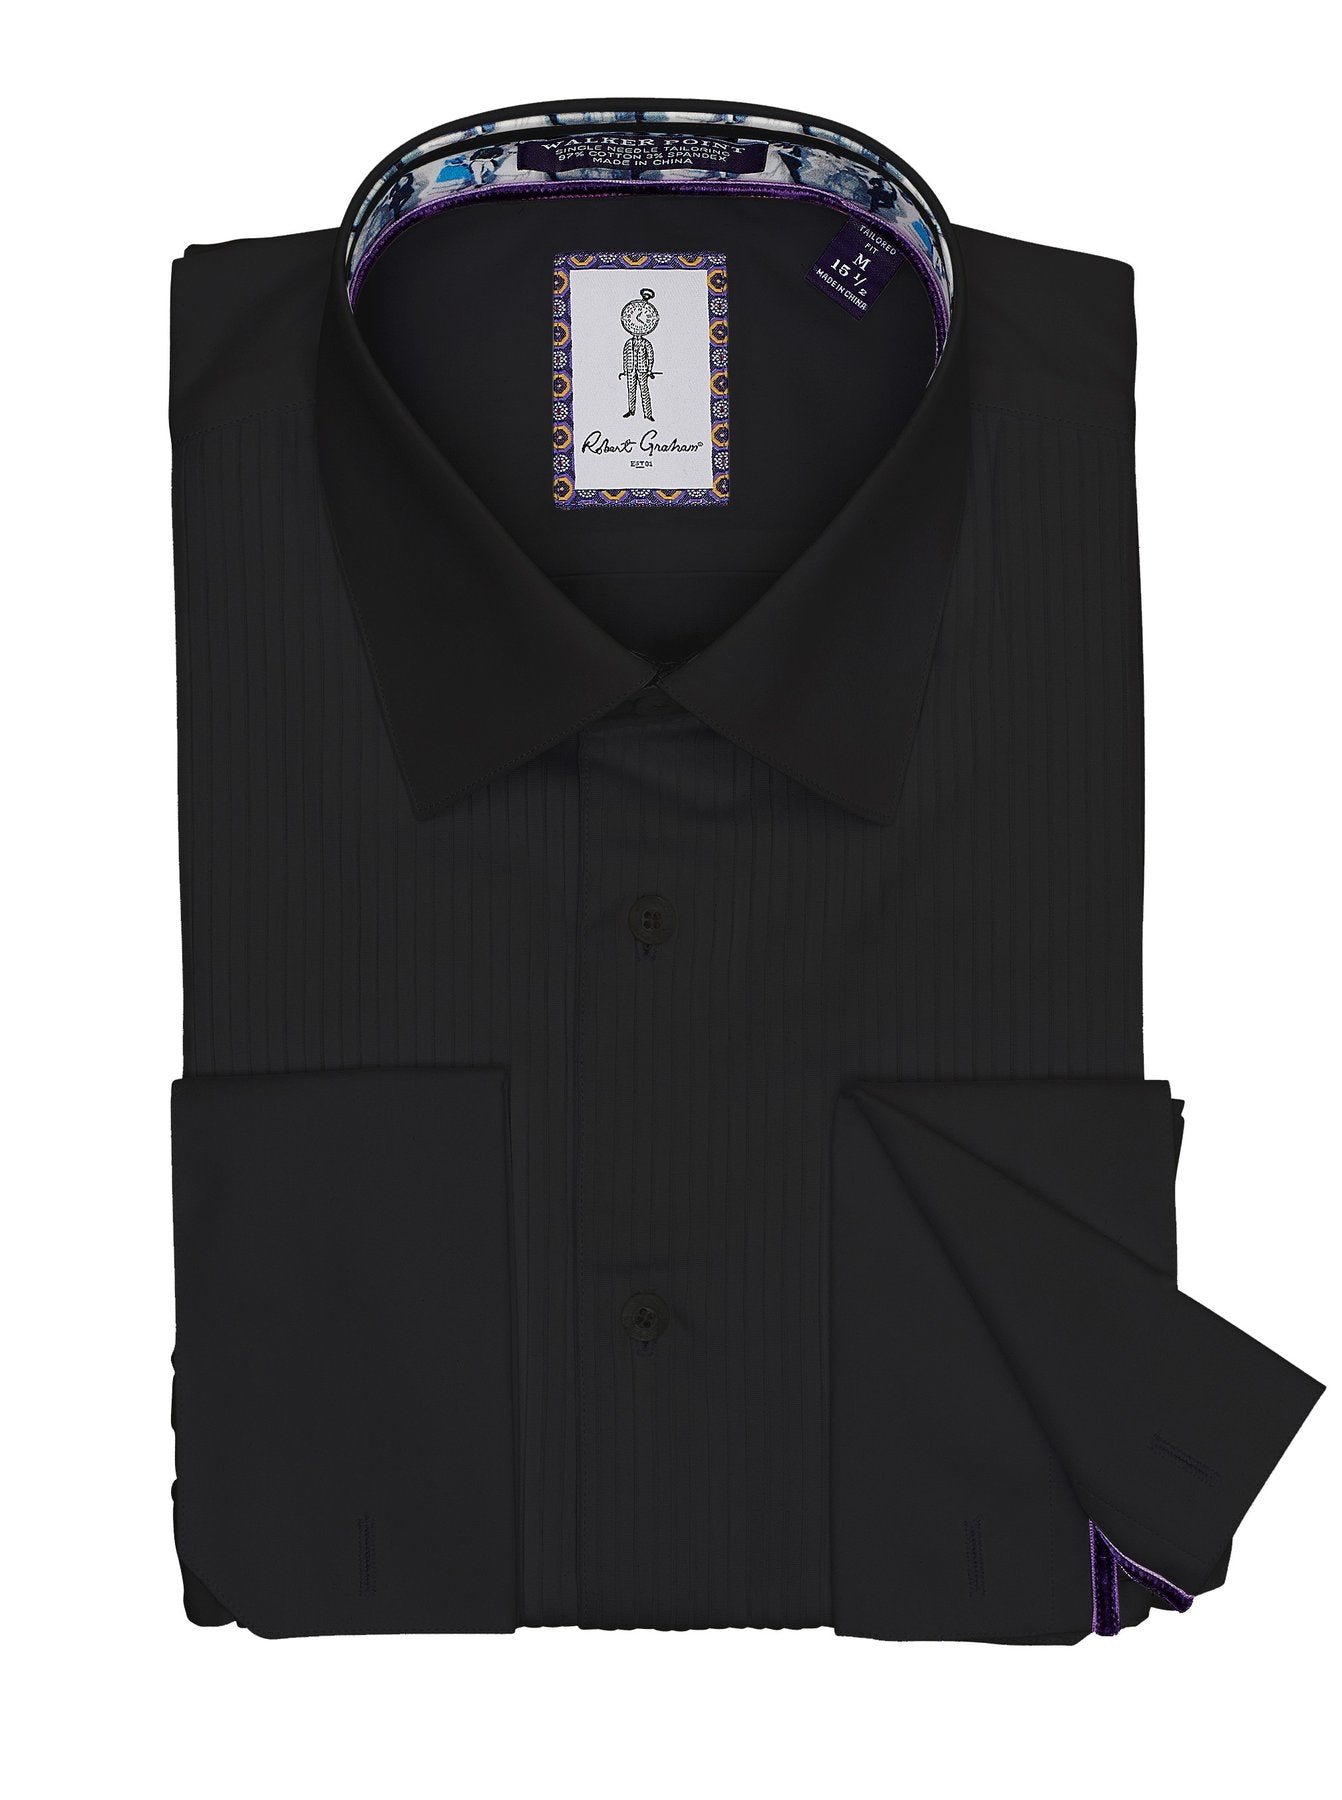 Robert Graham - Whitby - Black Dress Shirt